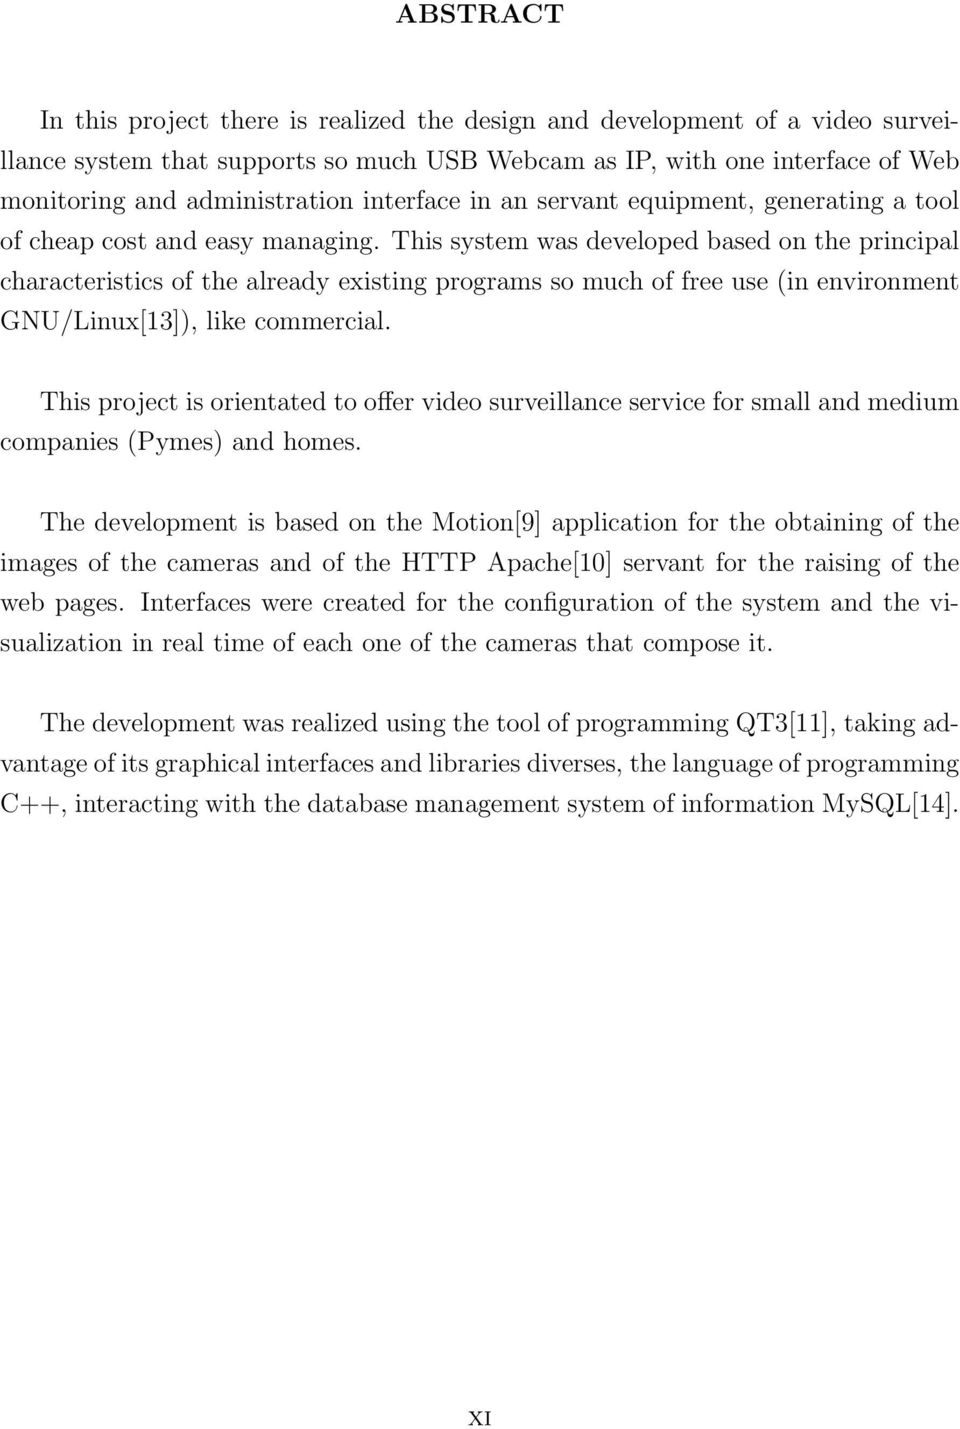 This system was developed based on the principal characteristics of the already existing programs so much of free use (in environment GNU/Linux[13]), like commercial.